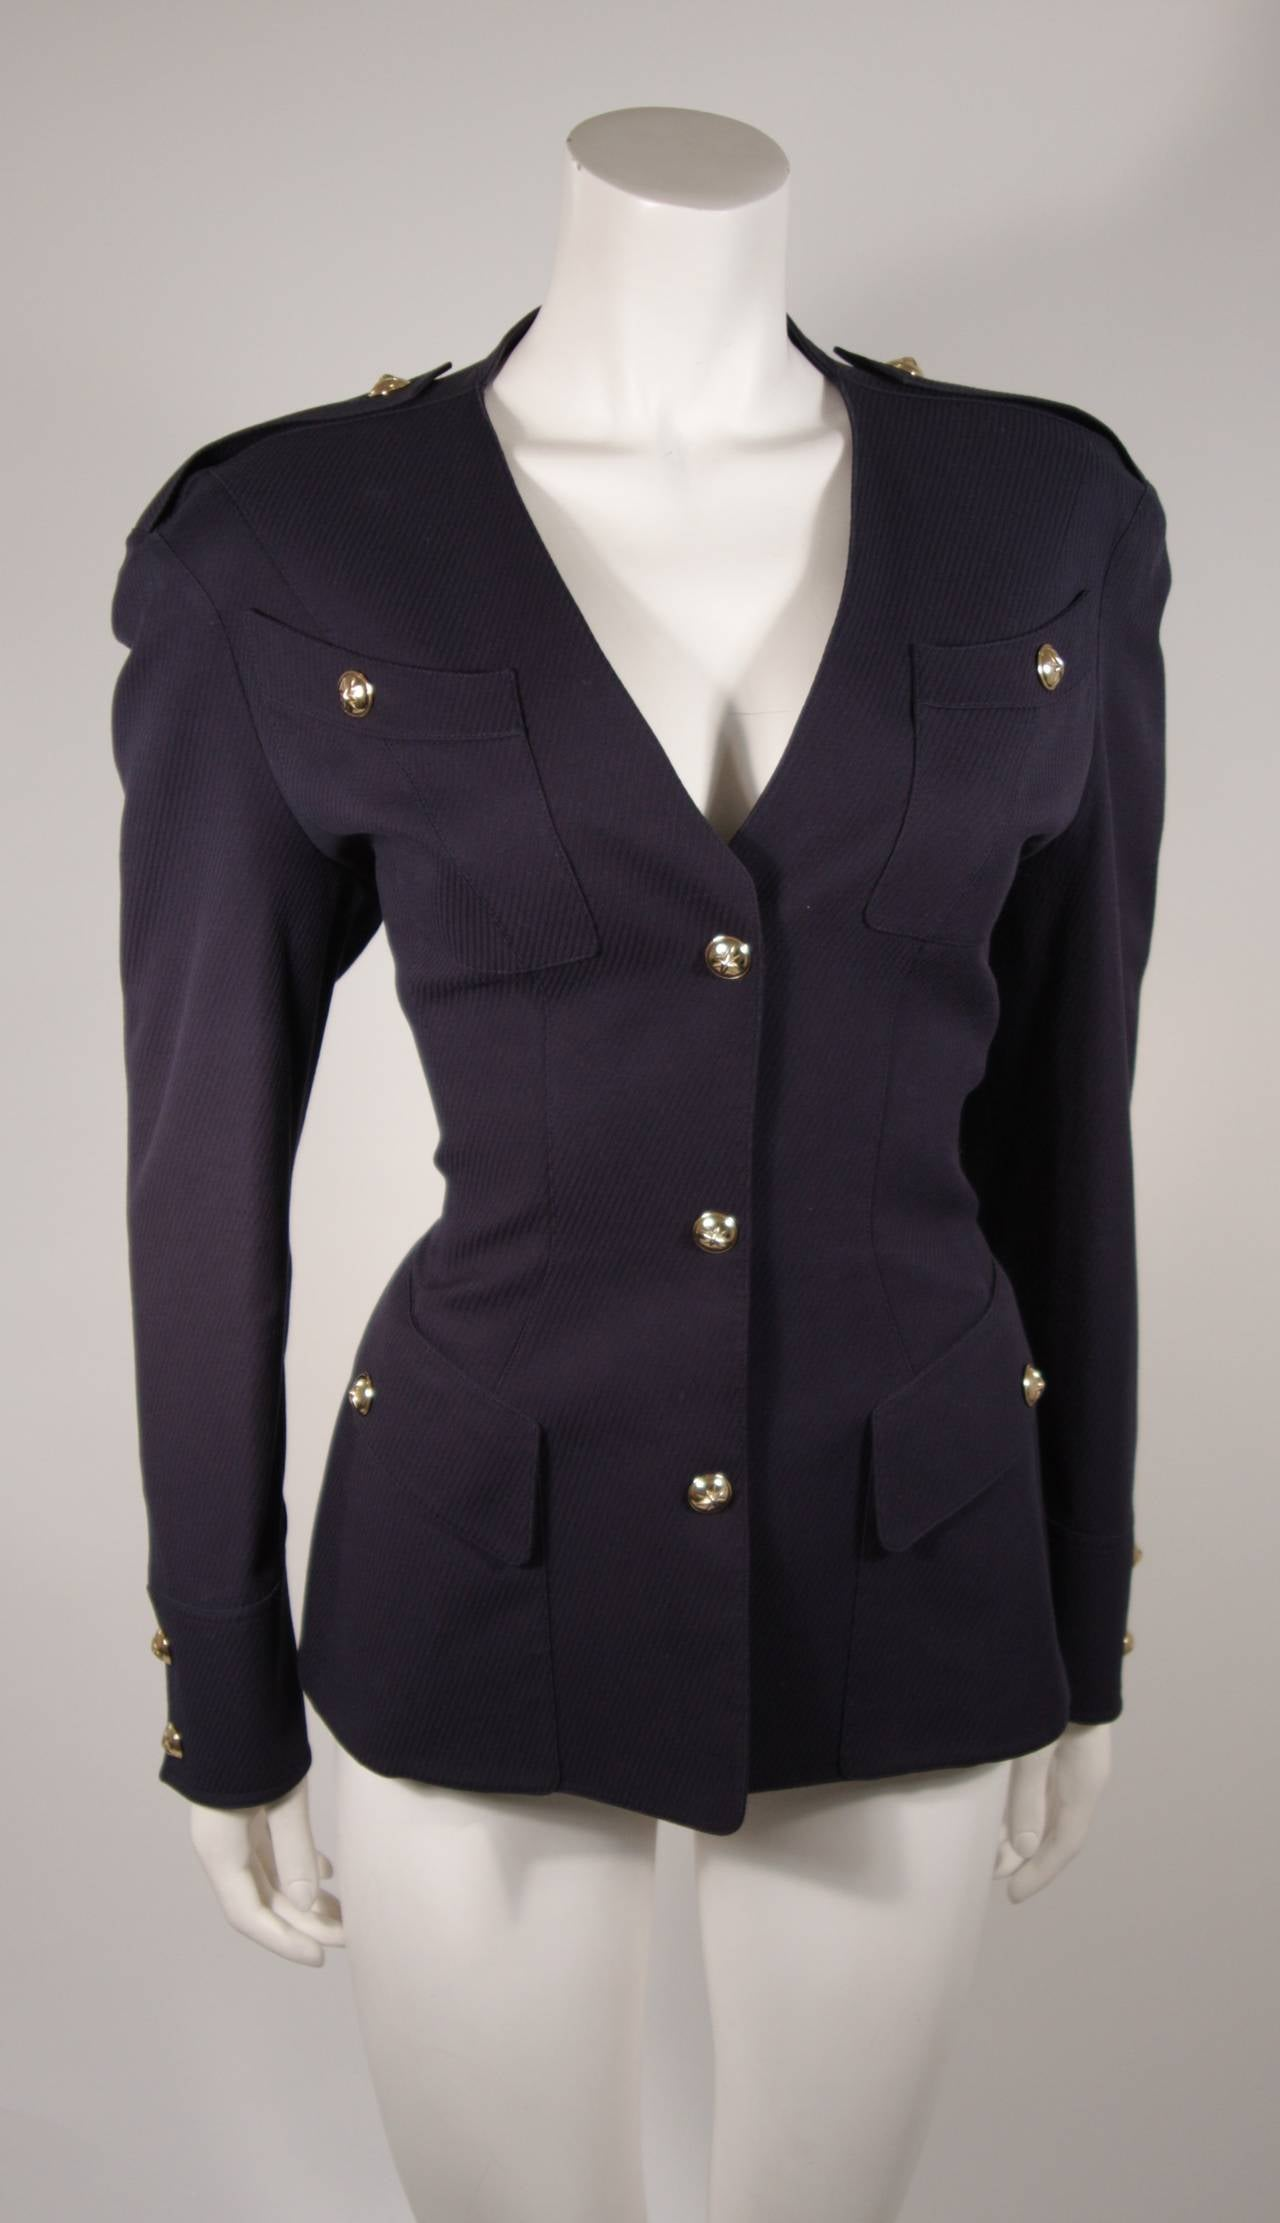 Theirry Mugler Navy Military Inspired Blazer with Gold Buttons Size 42 2